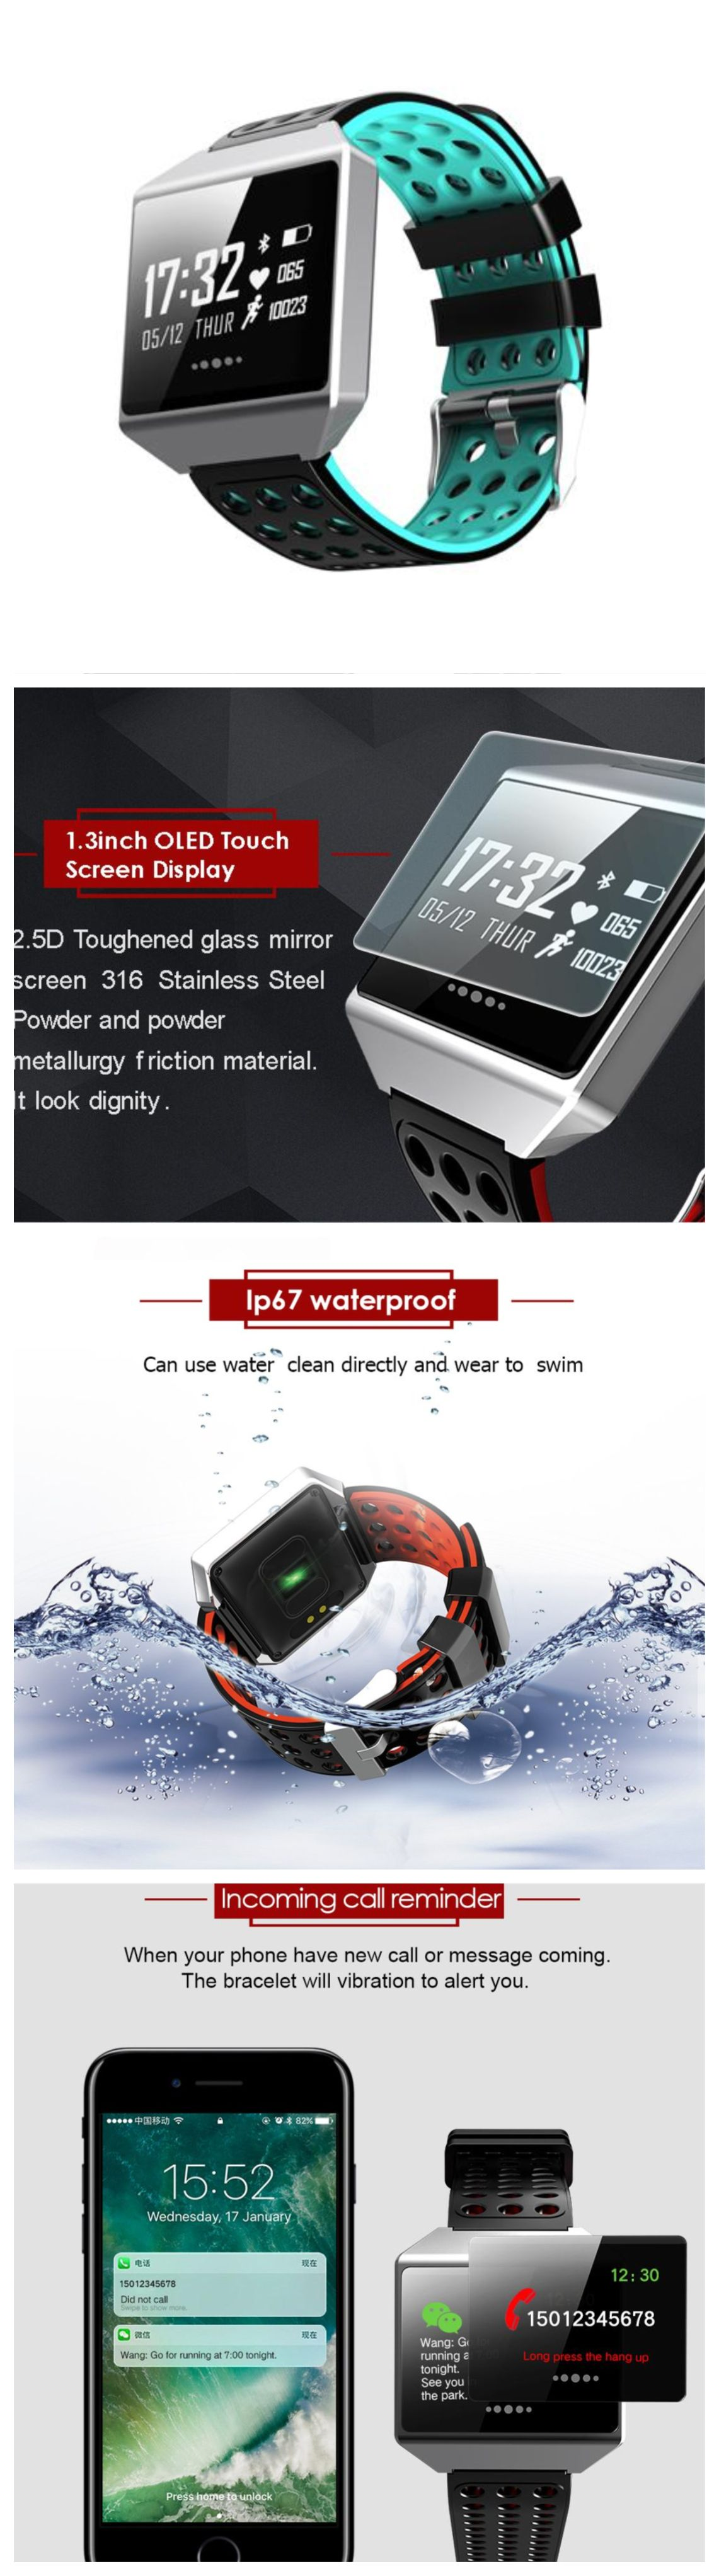 Fitness and GPS Watches: Sport Watches - Best Buy